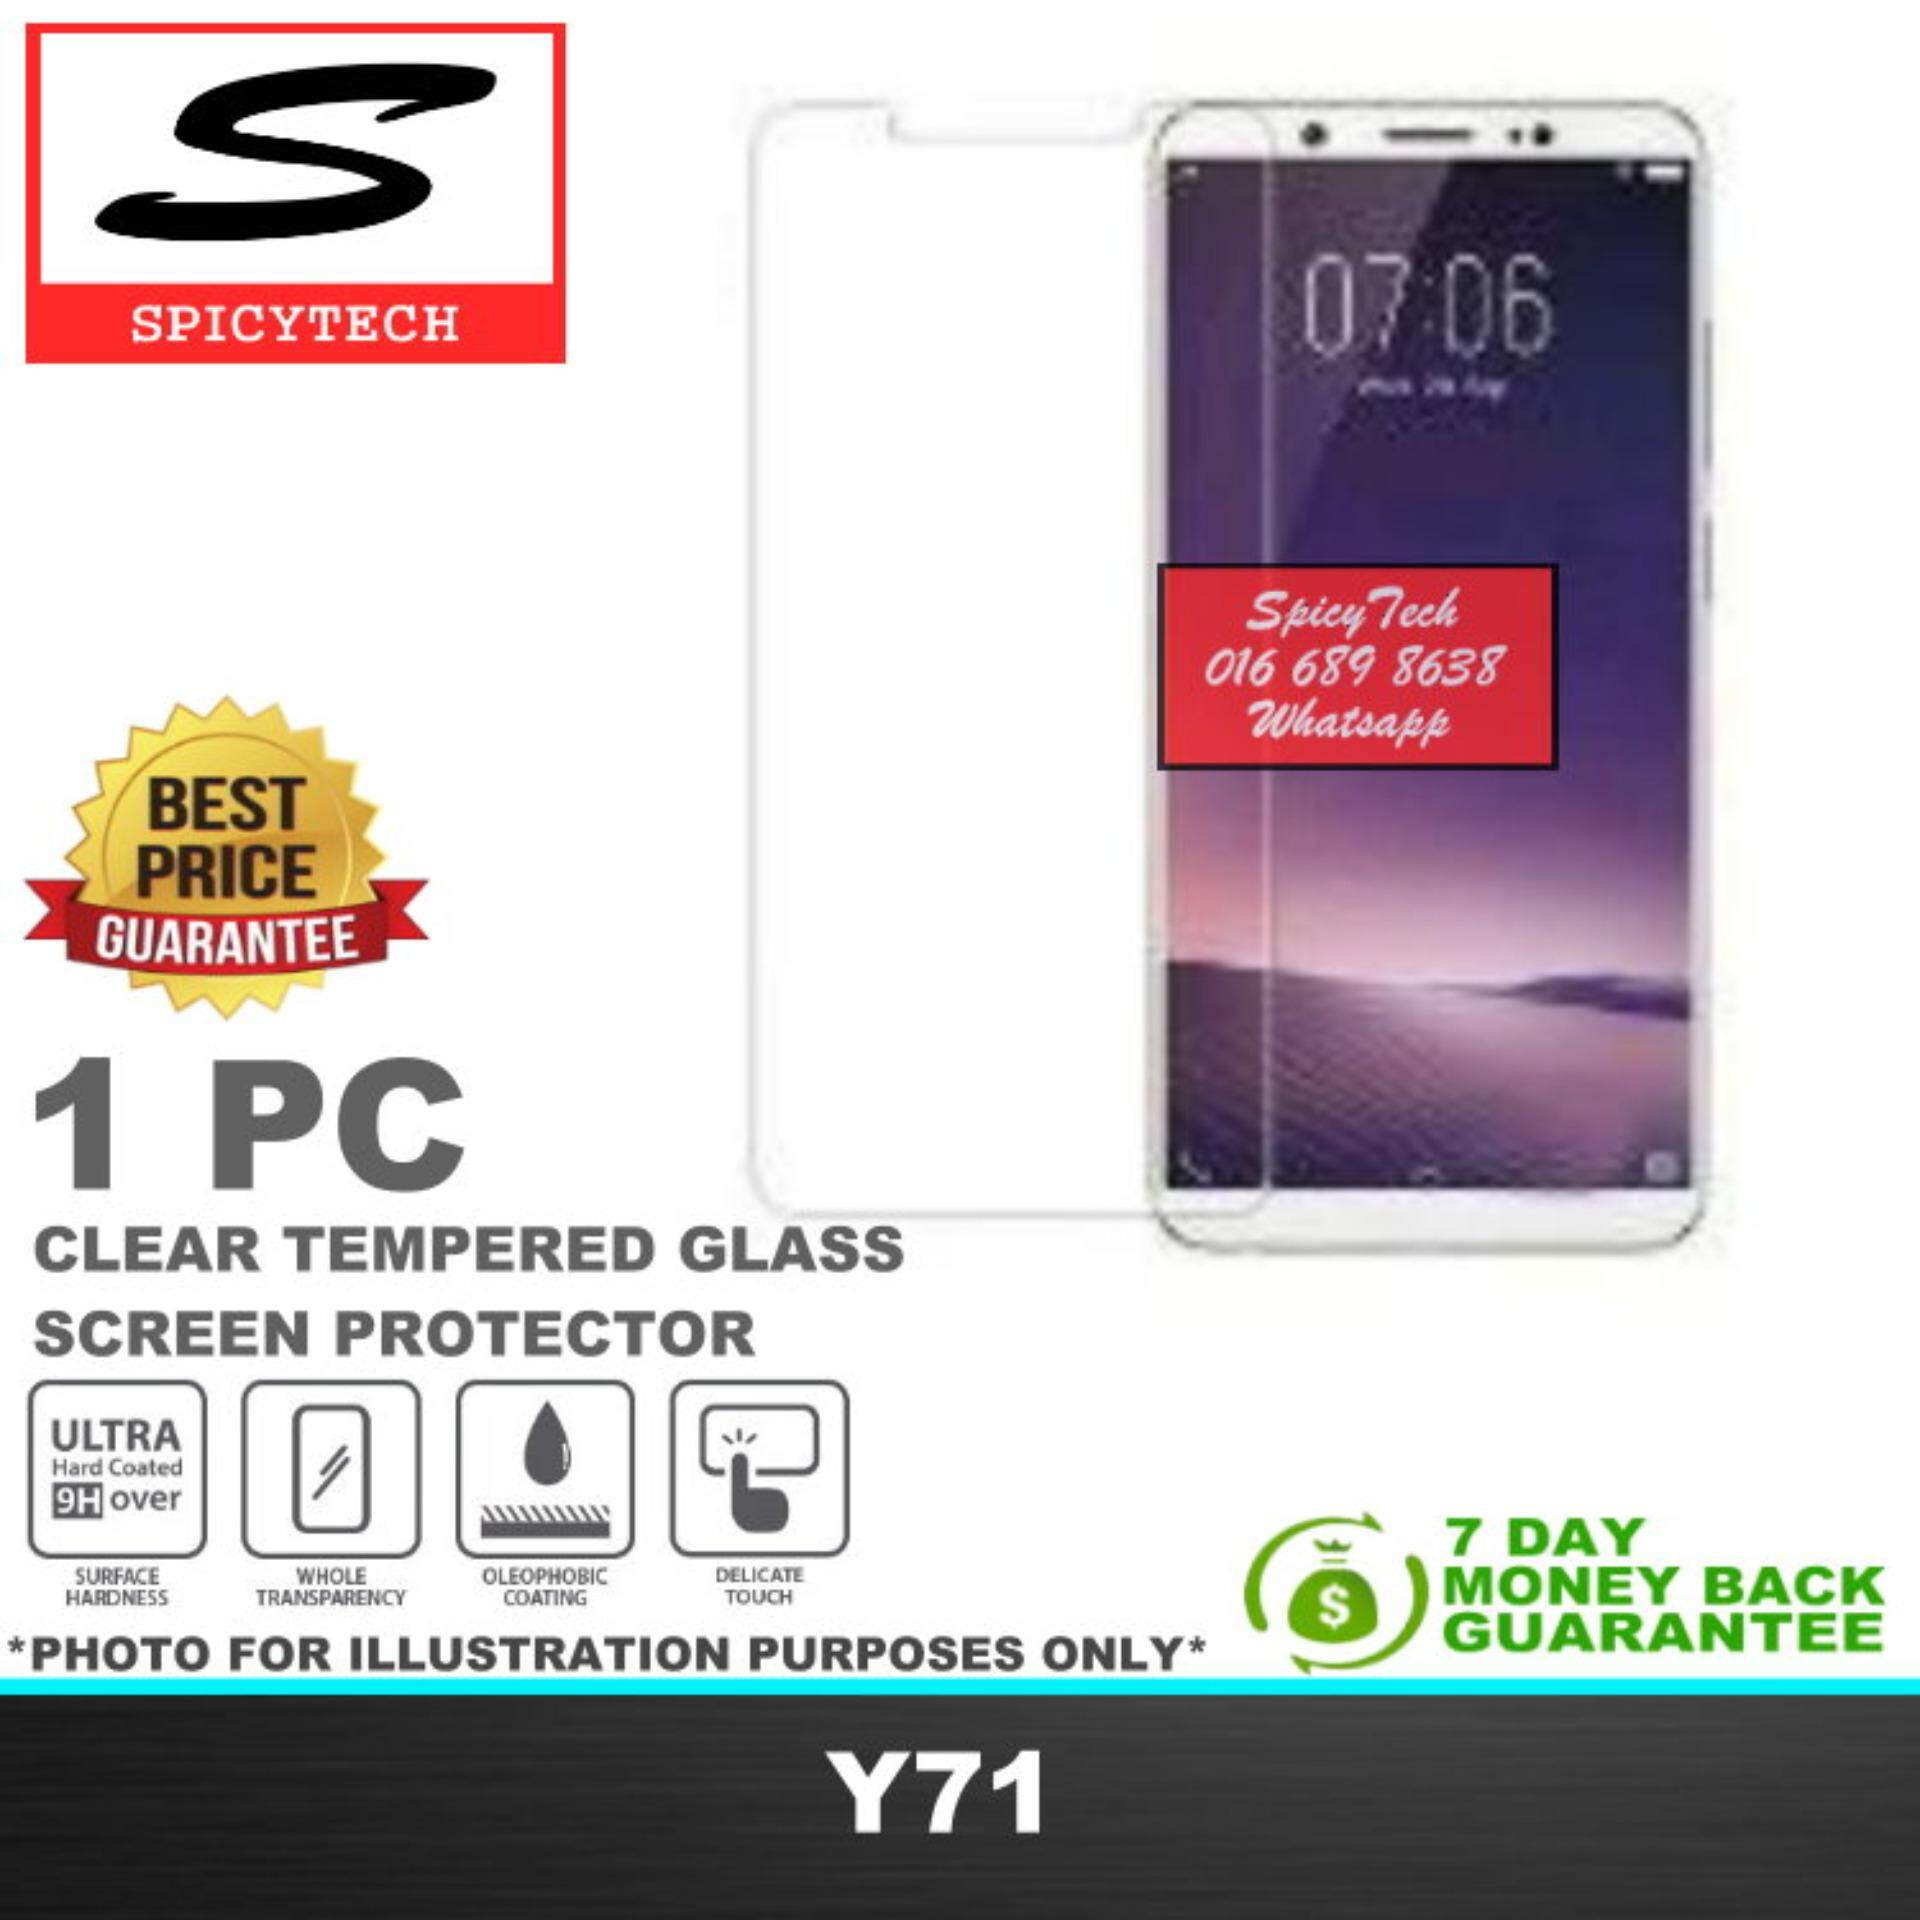 Fitur Tempered Glass Vivo Y71 9h Full Screen White Anti Gores Temperred Kaca Spicytech Premium 03mm 25d Protector Compatible For